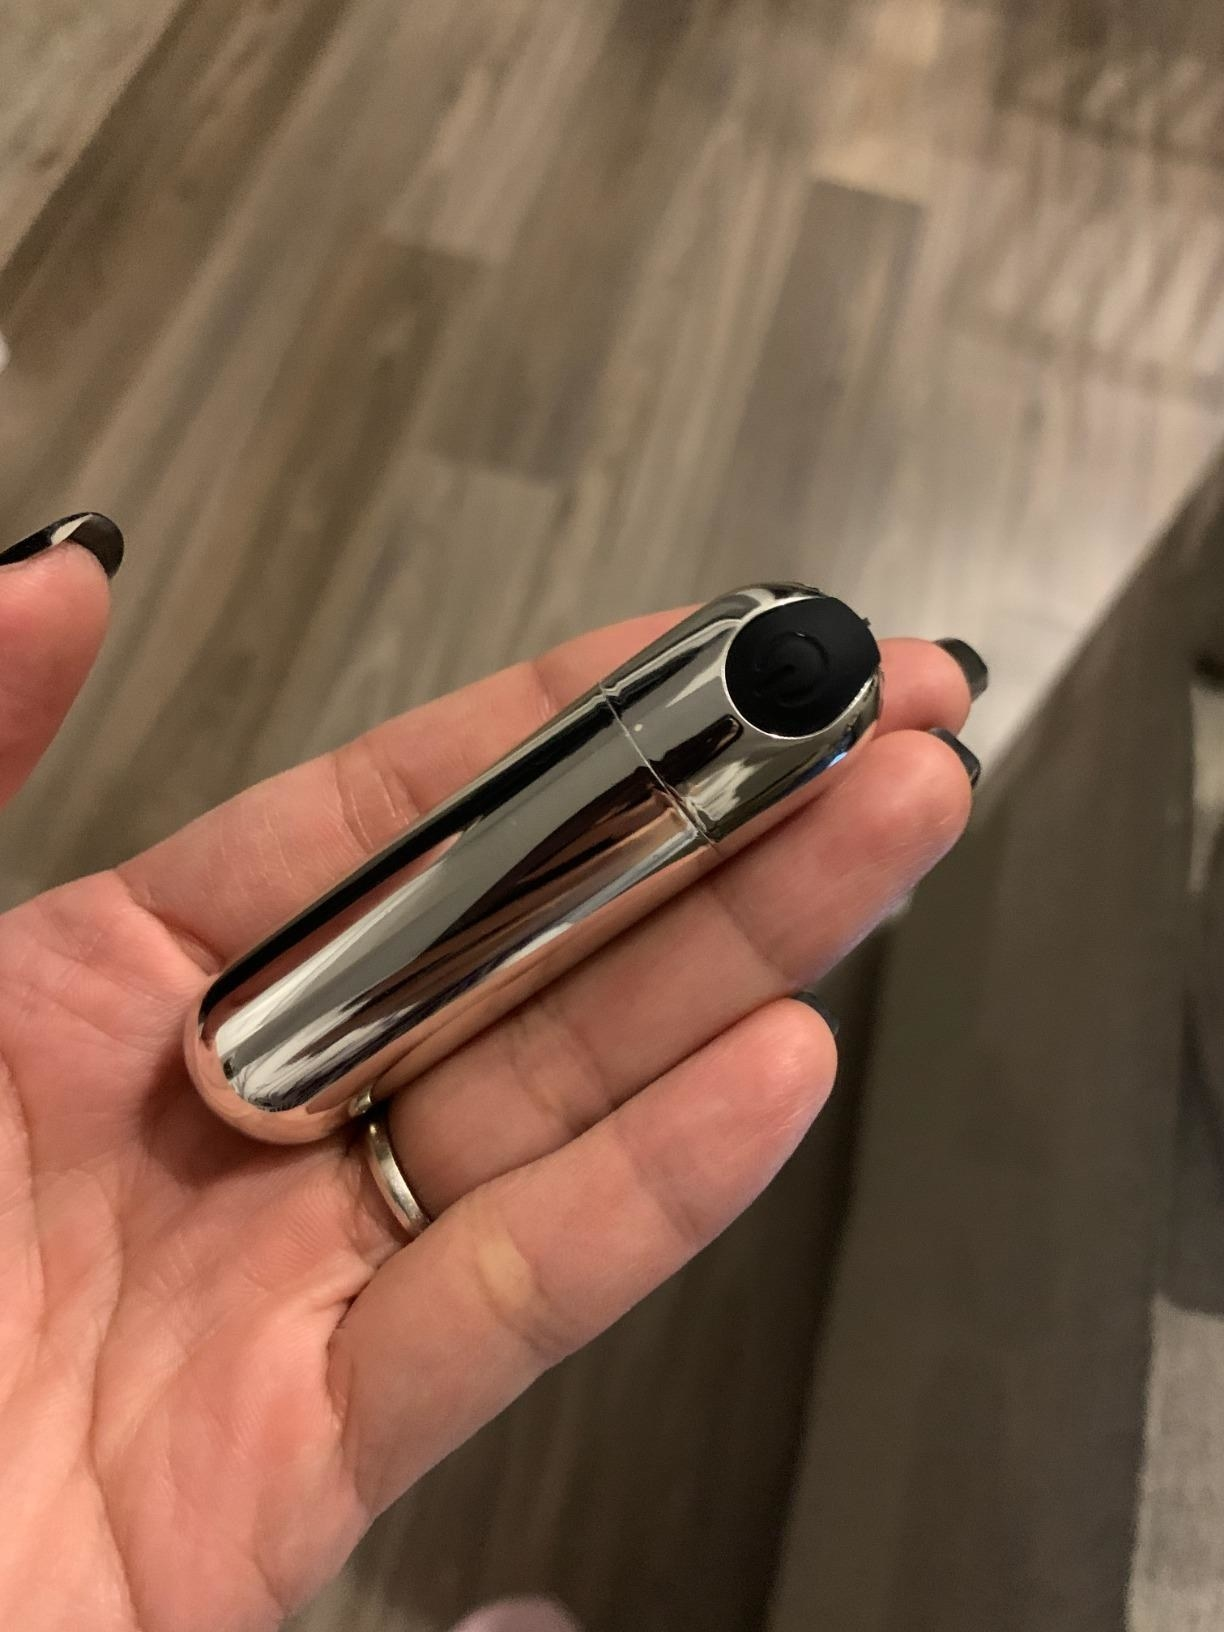 reviewer image of the silver bullet vibrator in the palm of a customer's hand